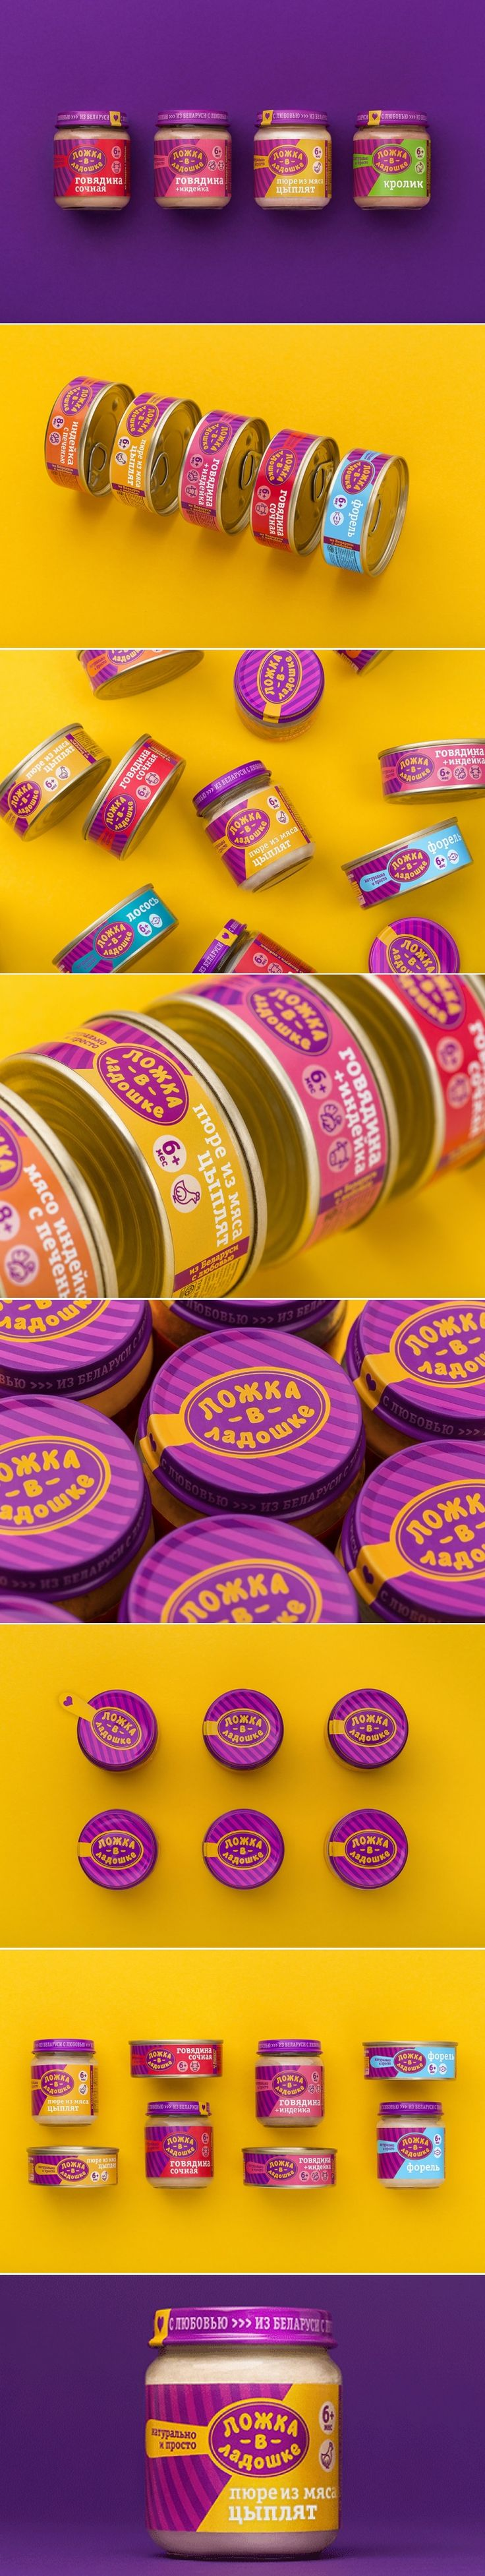 Who Doesn't Love Bright and Friendly Baby Food Packaging — The Dieline | Packaging & Branding Design & Innovation News